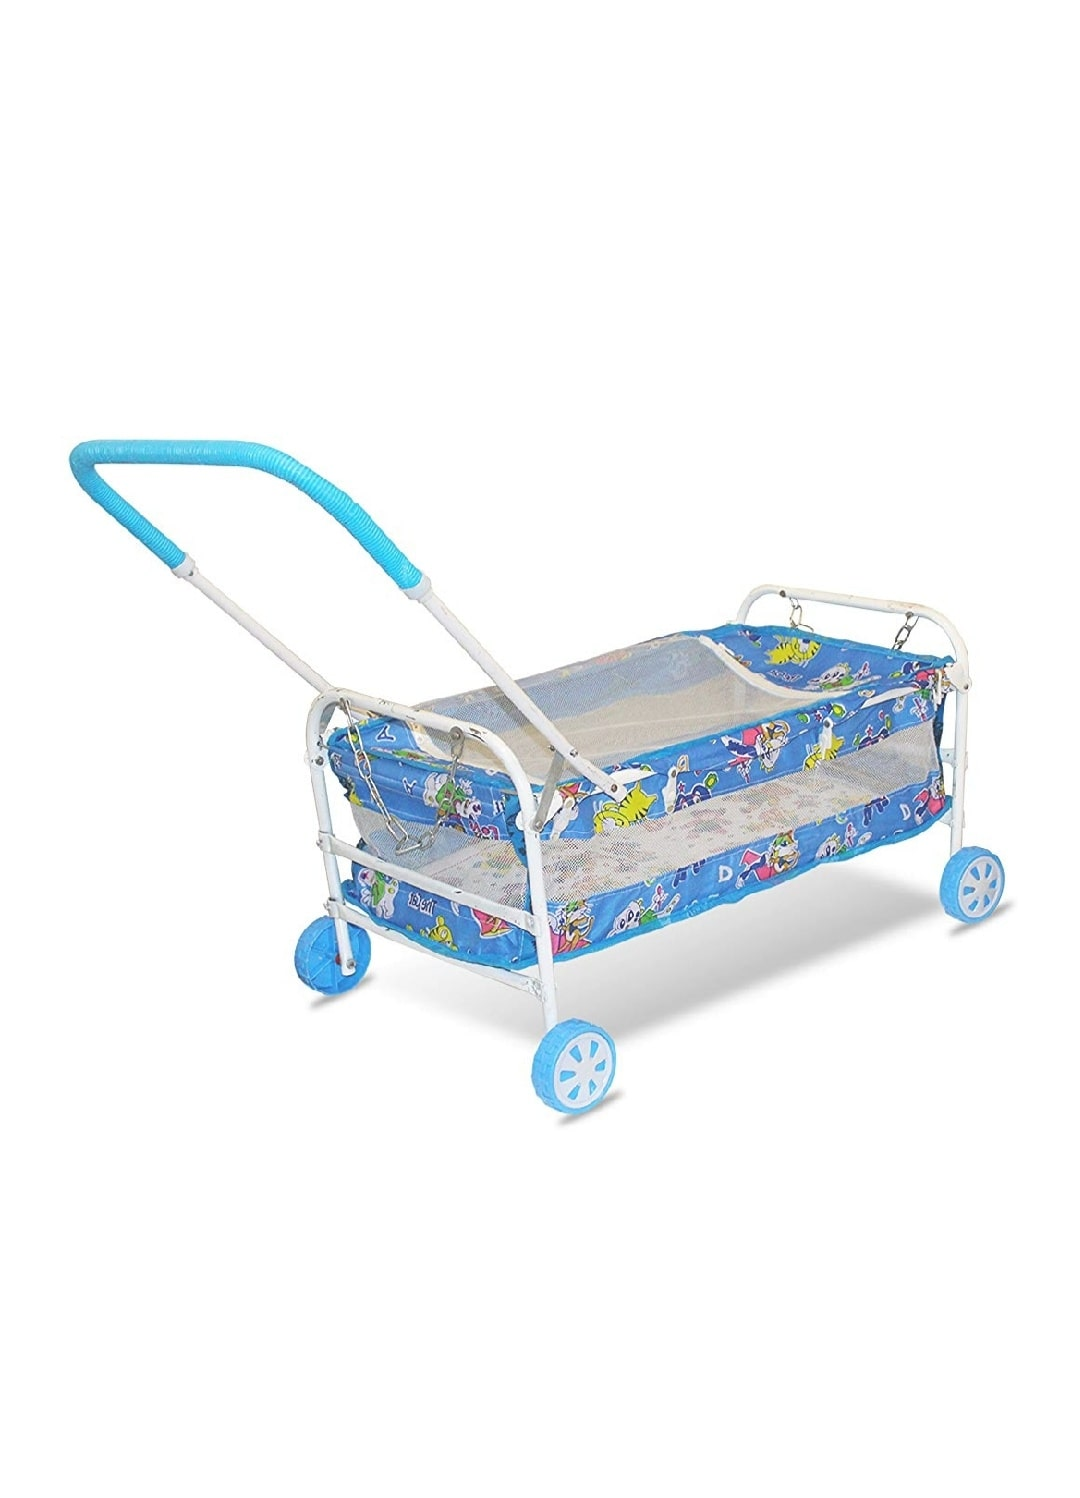 https://assetscdn1.paytm.com/images/catalog/product/K/KI/KIDFUN-RUN-BABYFUN-984193B46F71C0/0..jpg